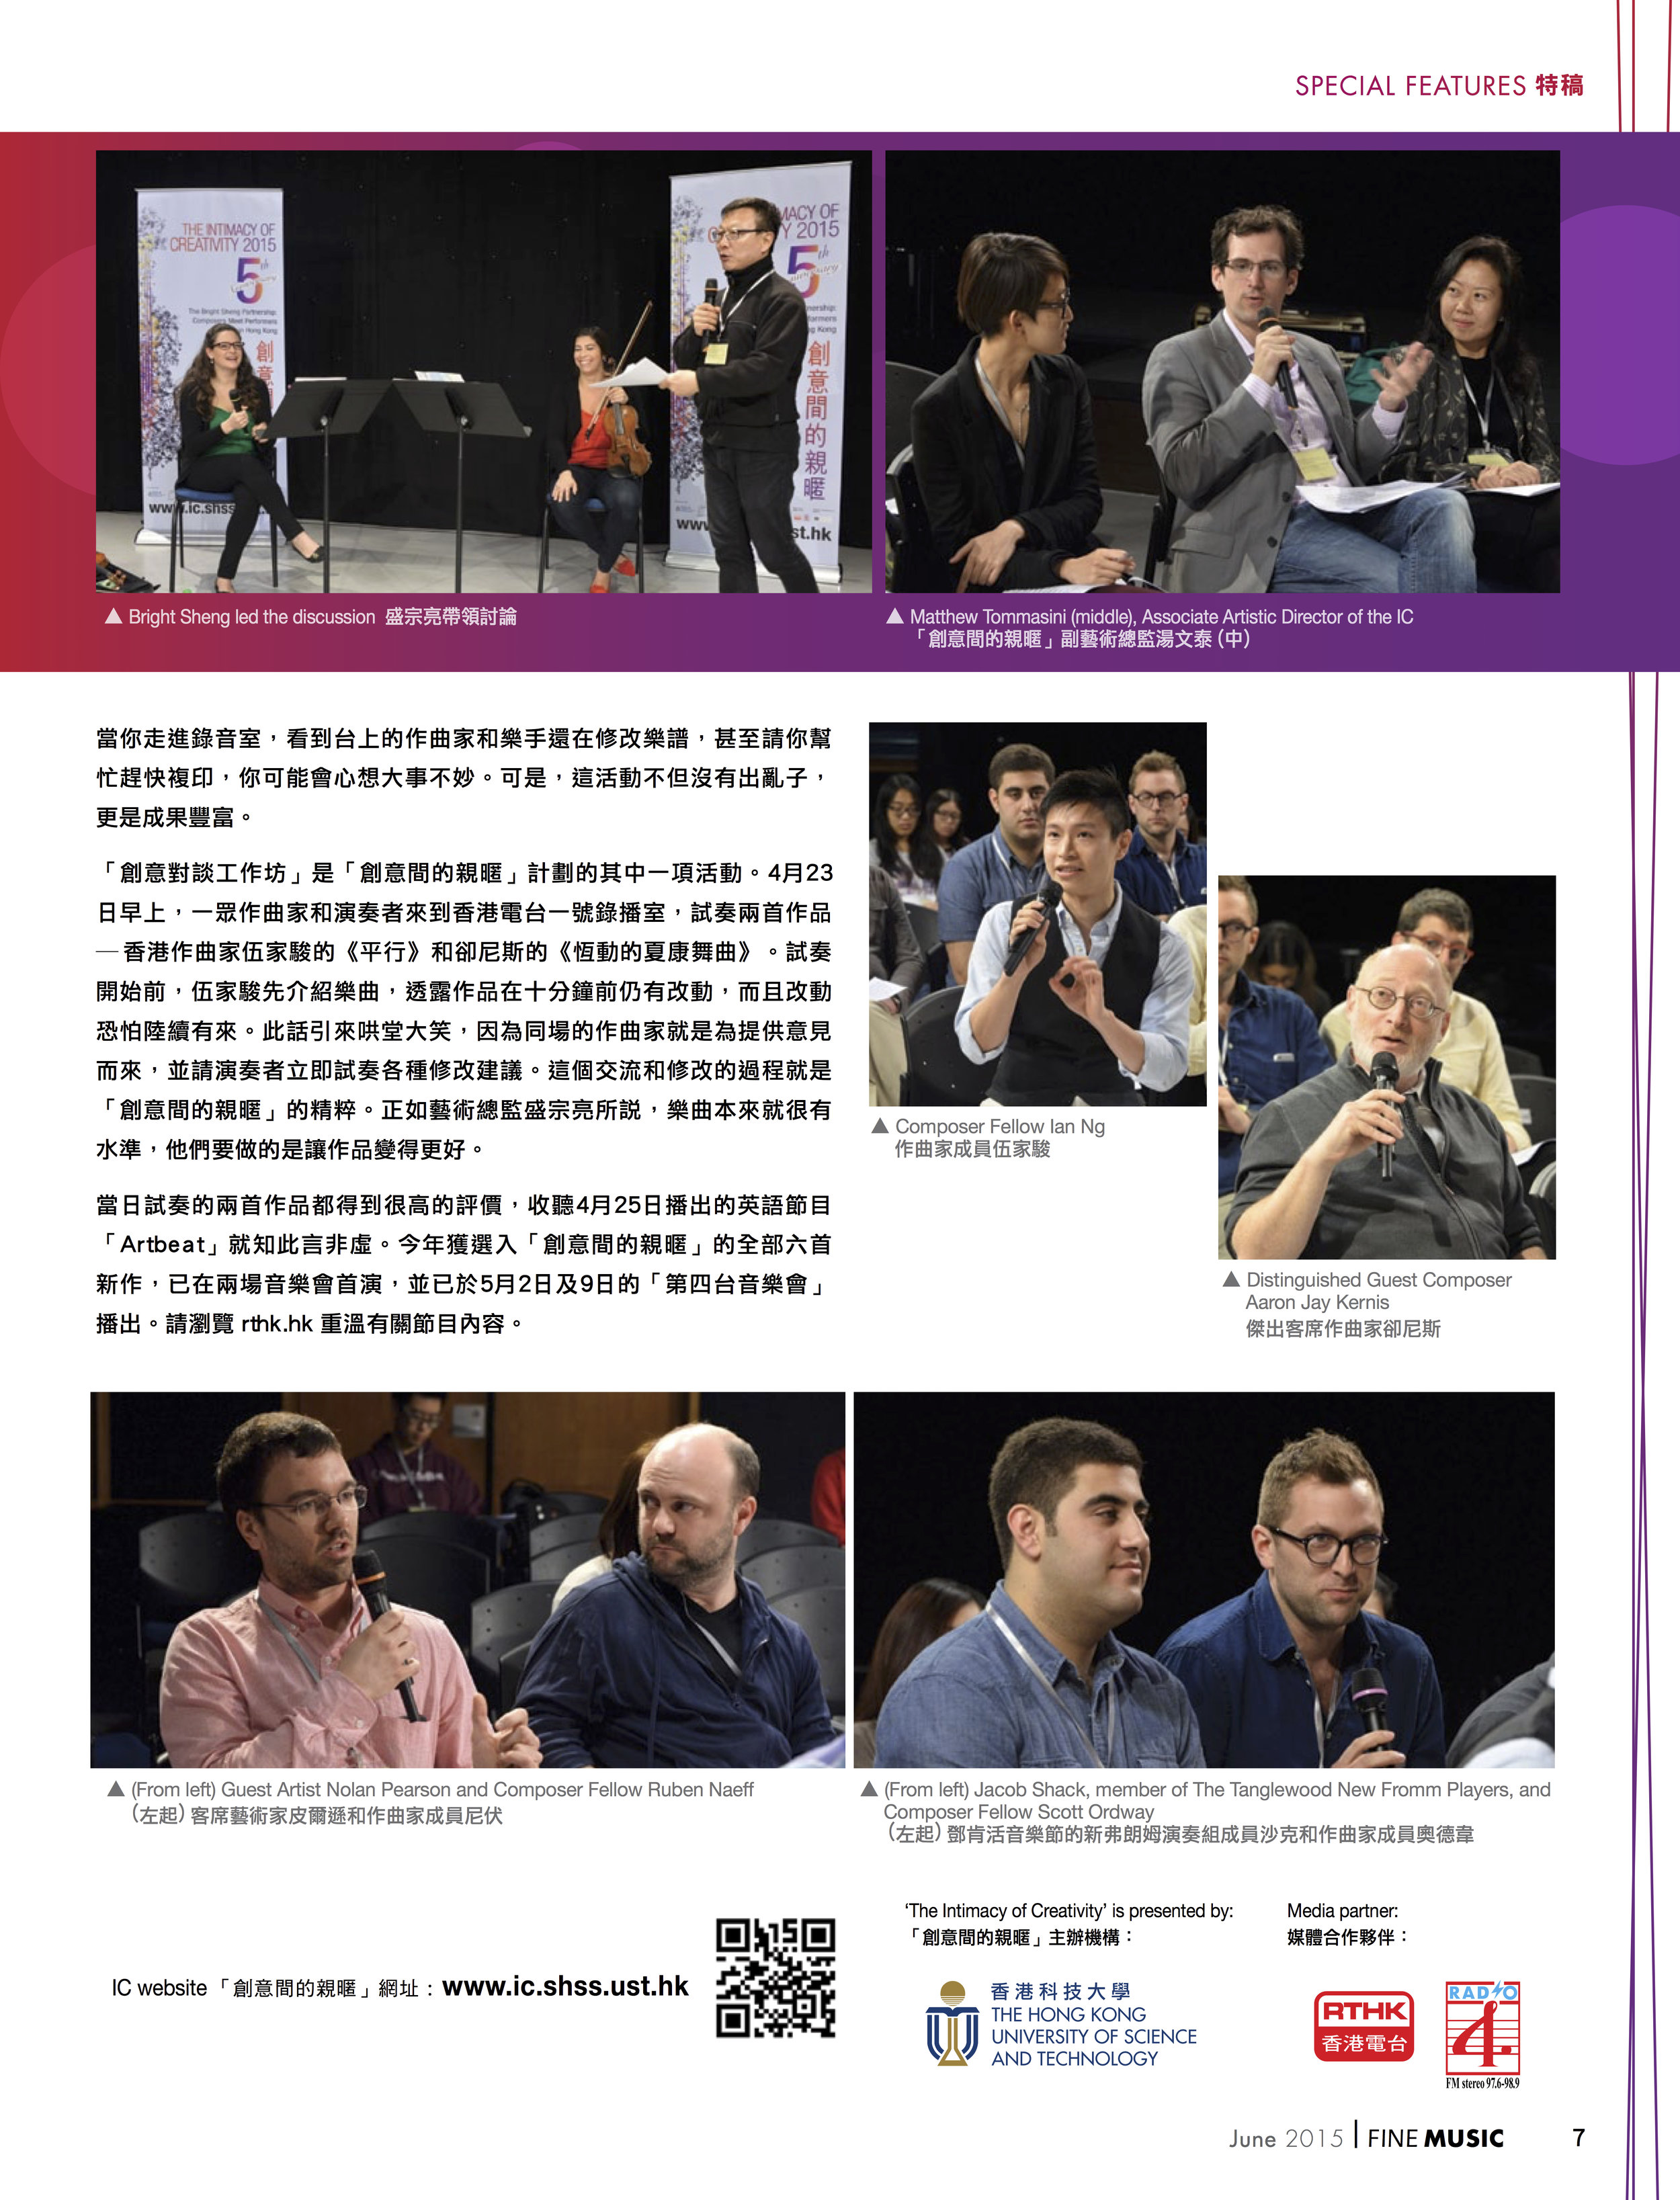 Pages from finemusic_201506.2.jpg